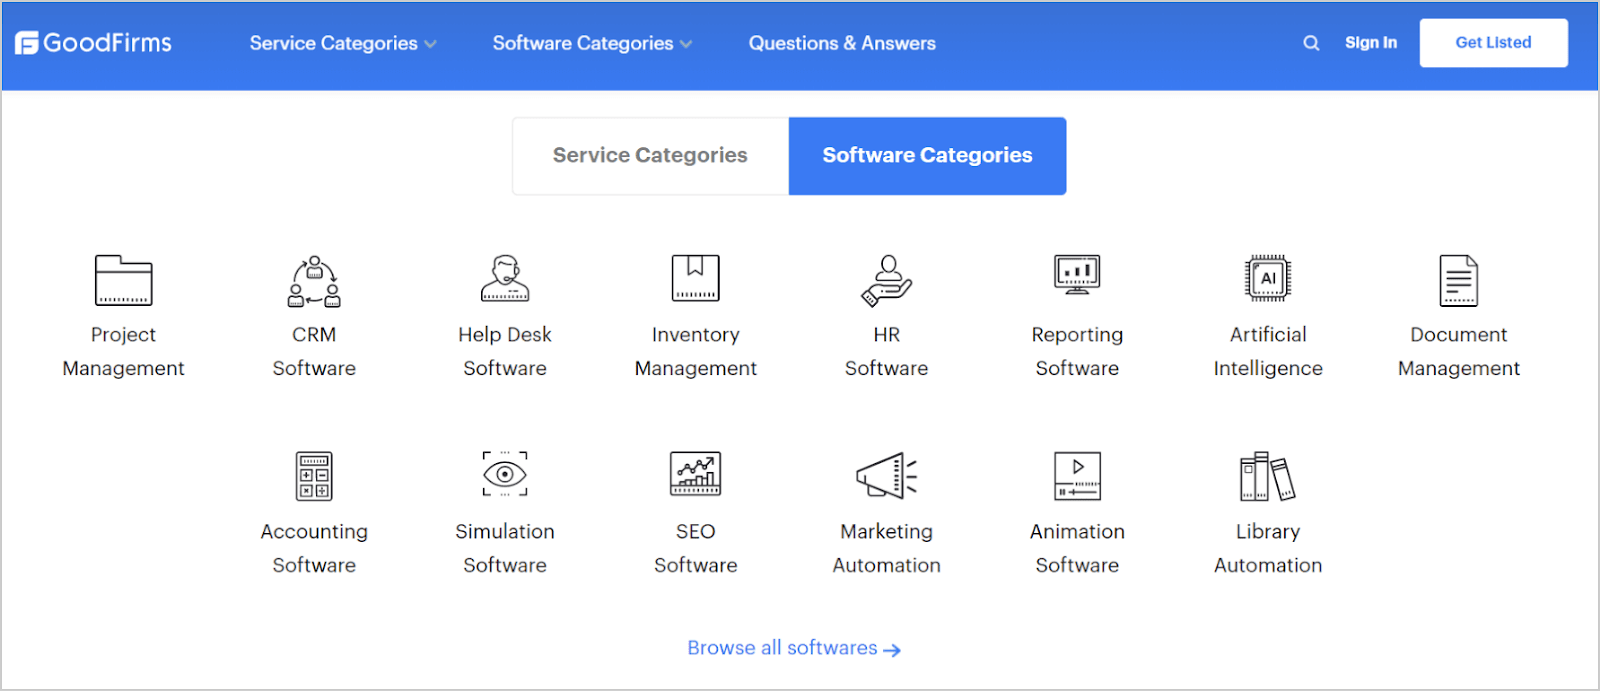 GoodFirms: Software categories